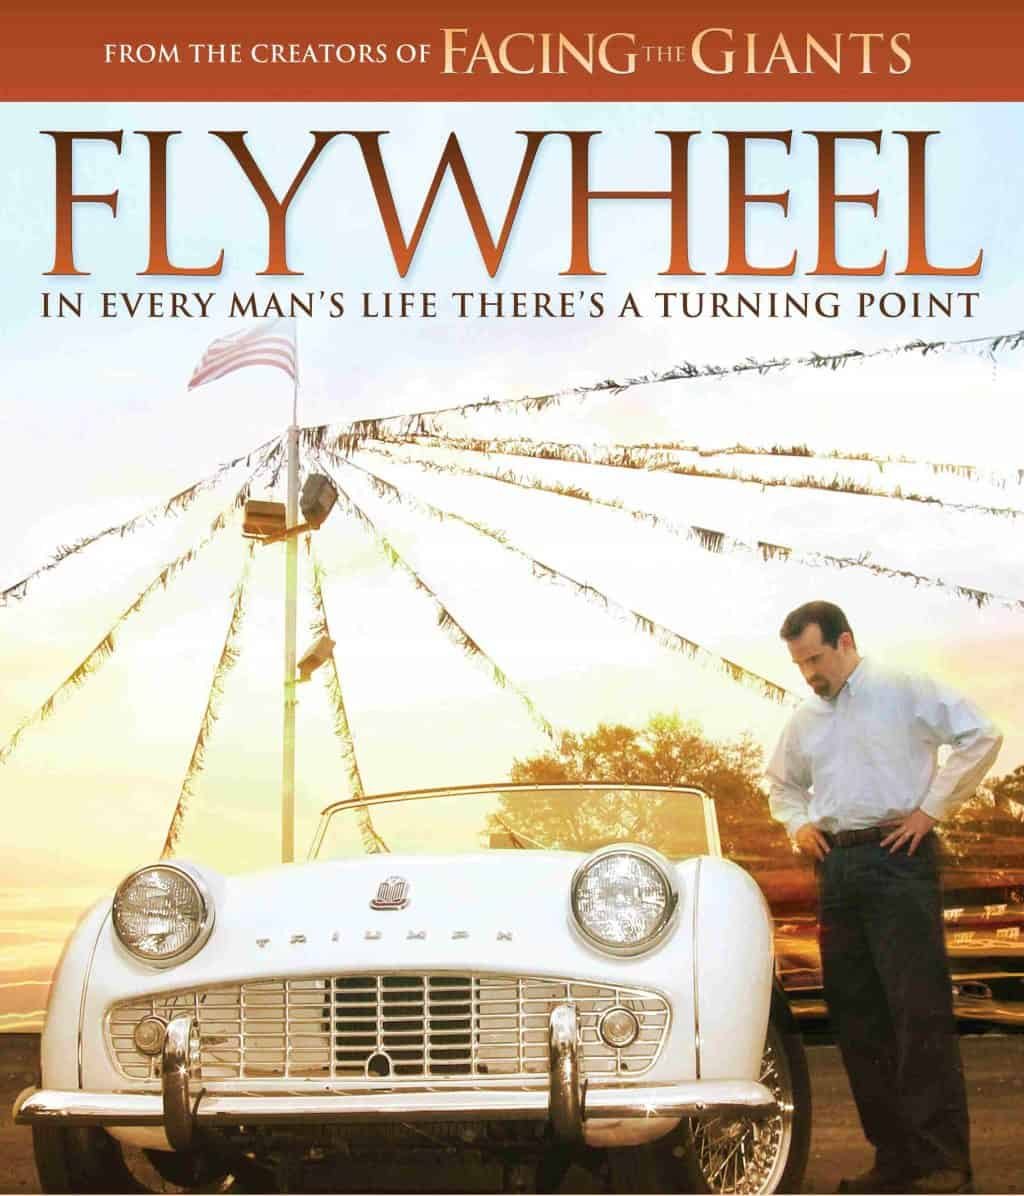 Flywheel - a movied from the creators of Facing the Giants